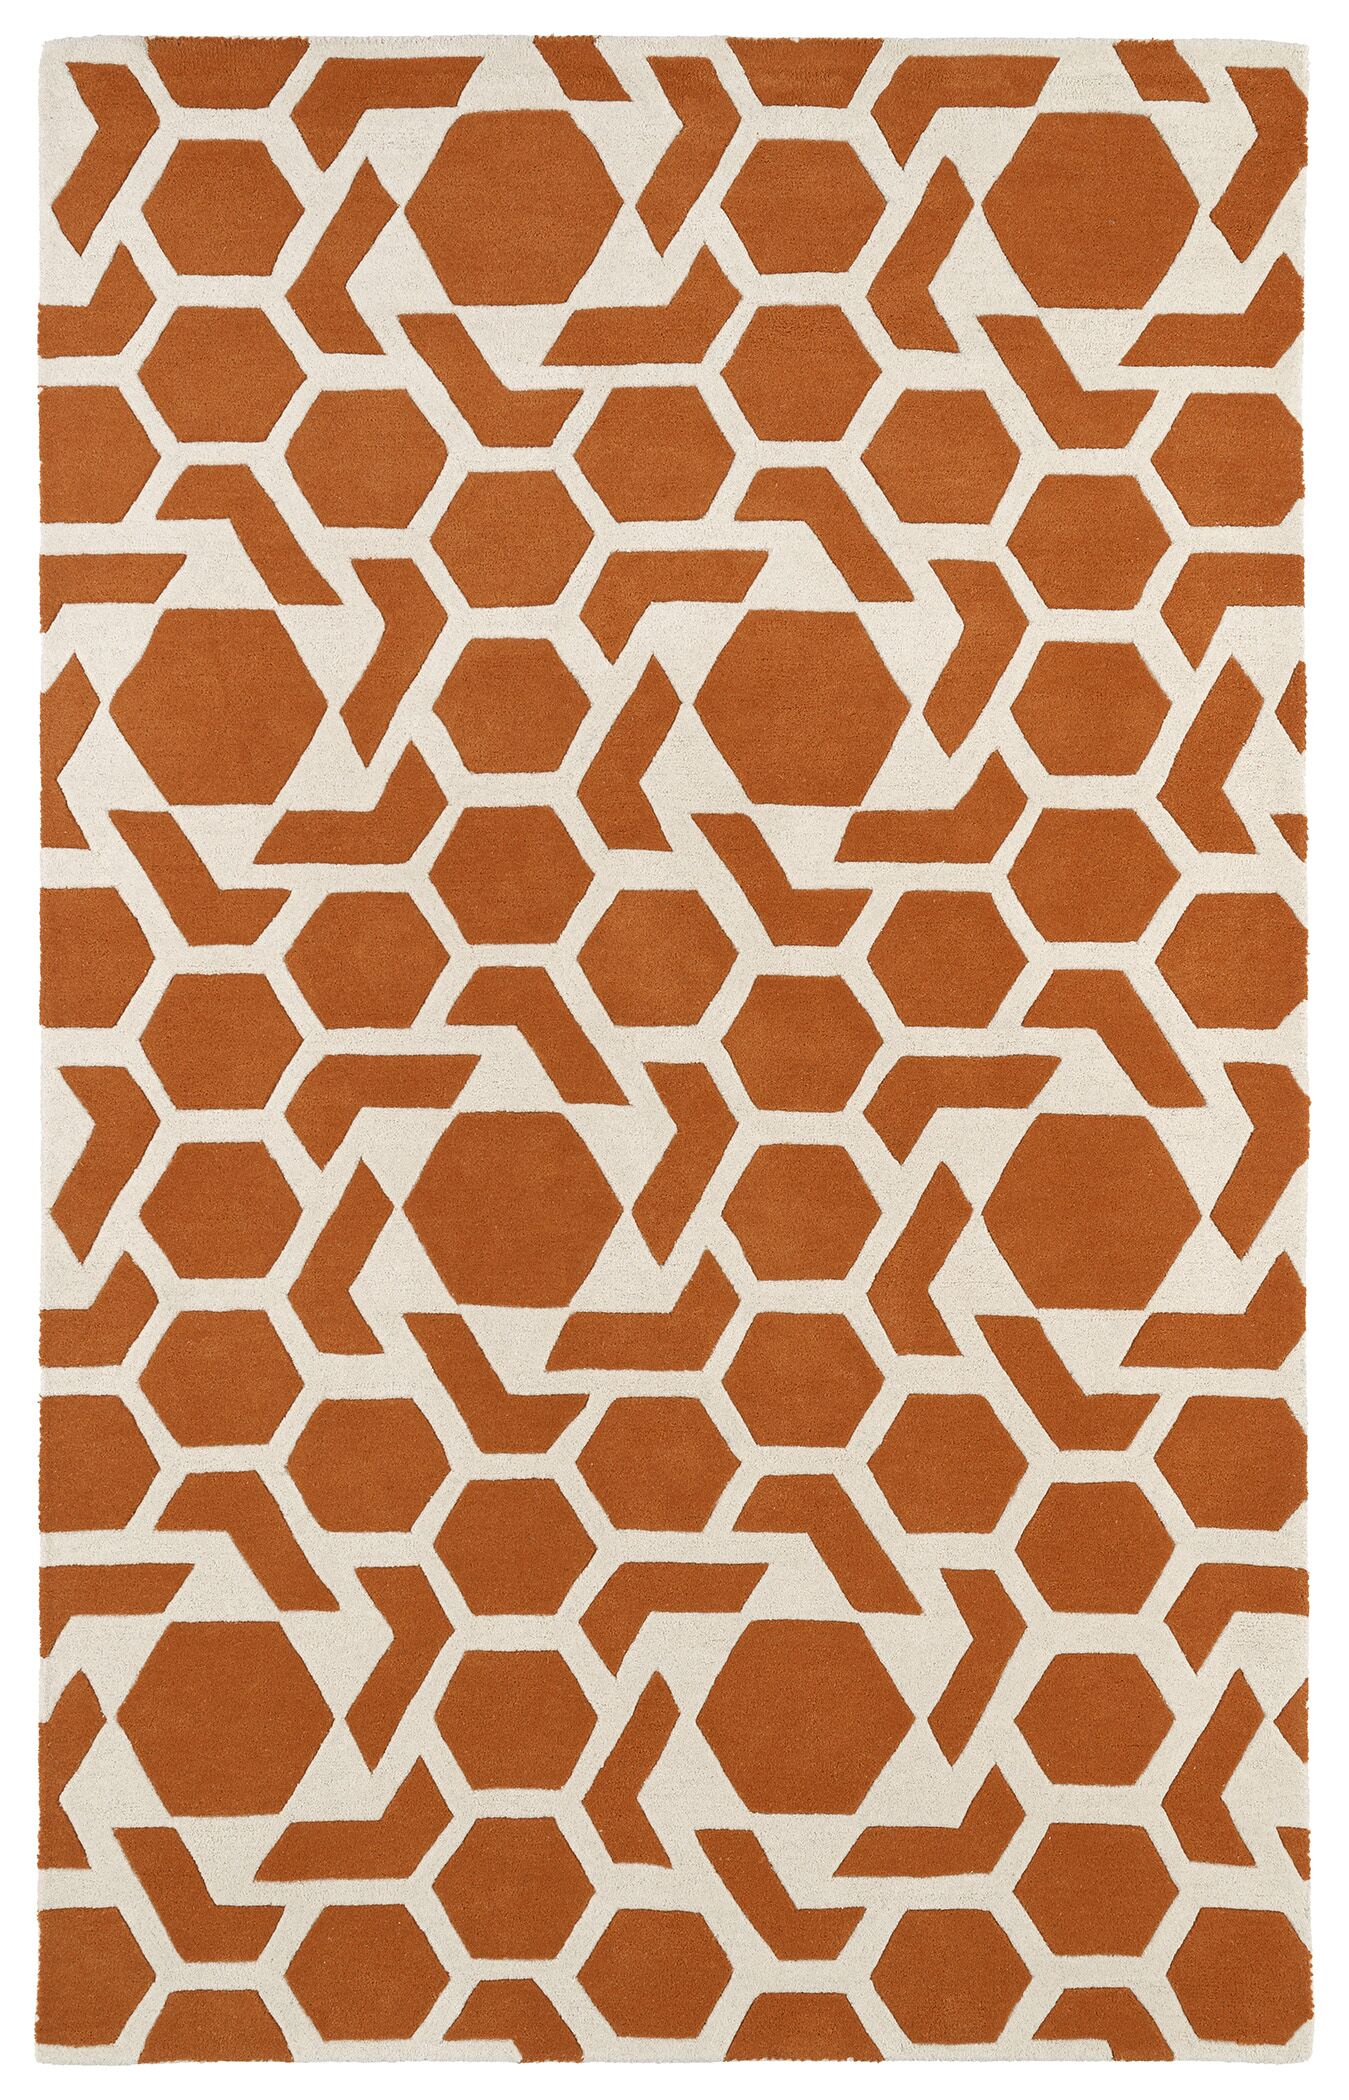 Fairlee Orange/White Area Rug Rug Size: Rectangle 9'6